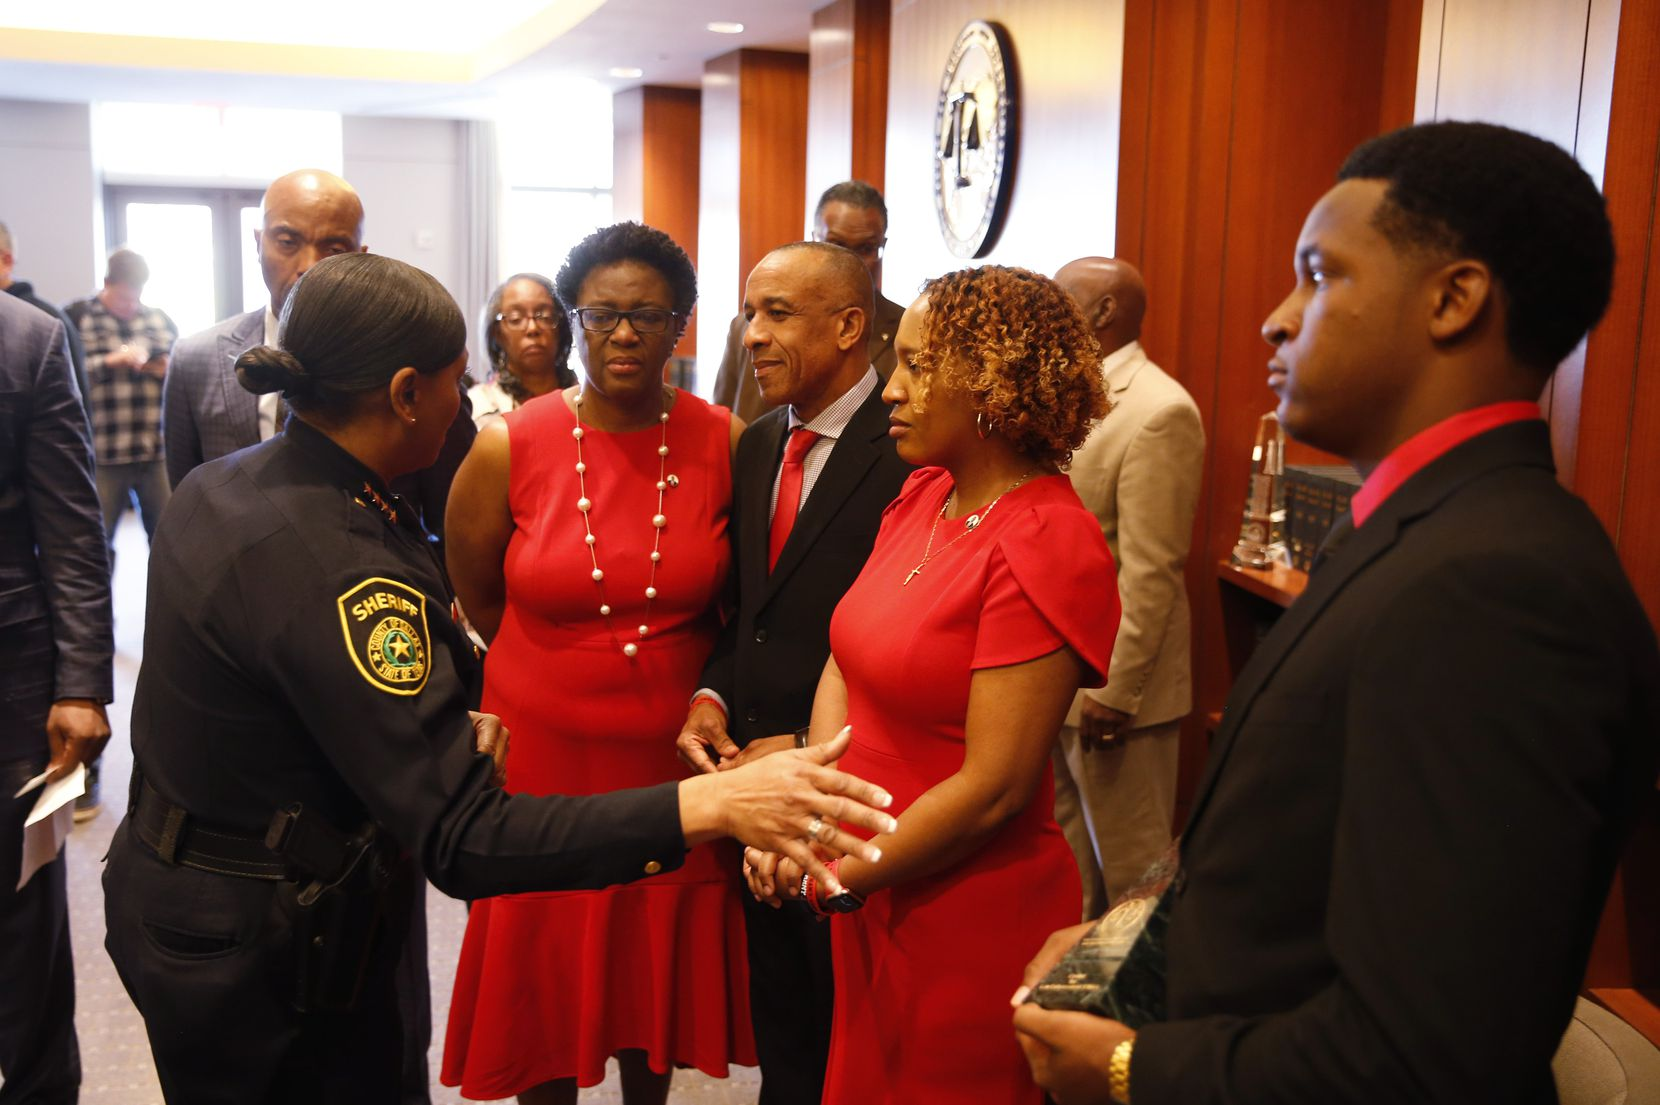 Dallas County Sheriff Marian Brown talks with the Jean family (from left) Allison Jean, Bertrum Jean, Allisa Findley and Brandt Jean on Tuesday after Botham Jean's younger brother received an award in Plano.